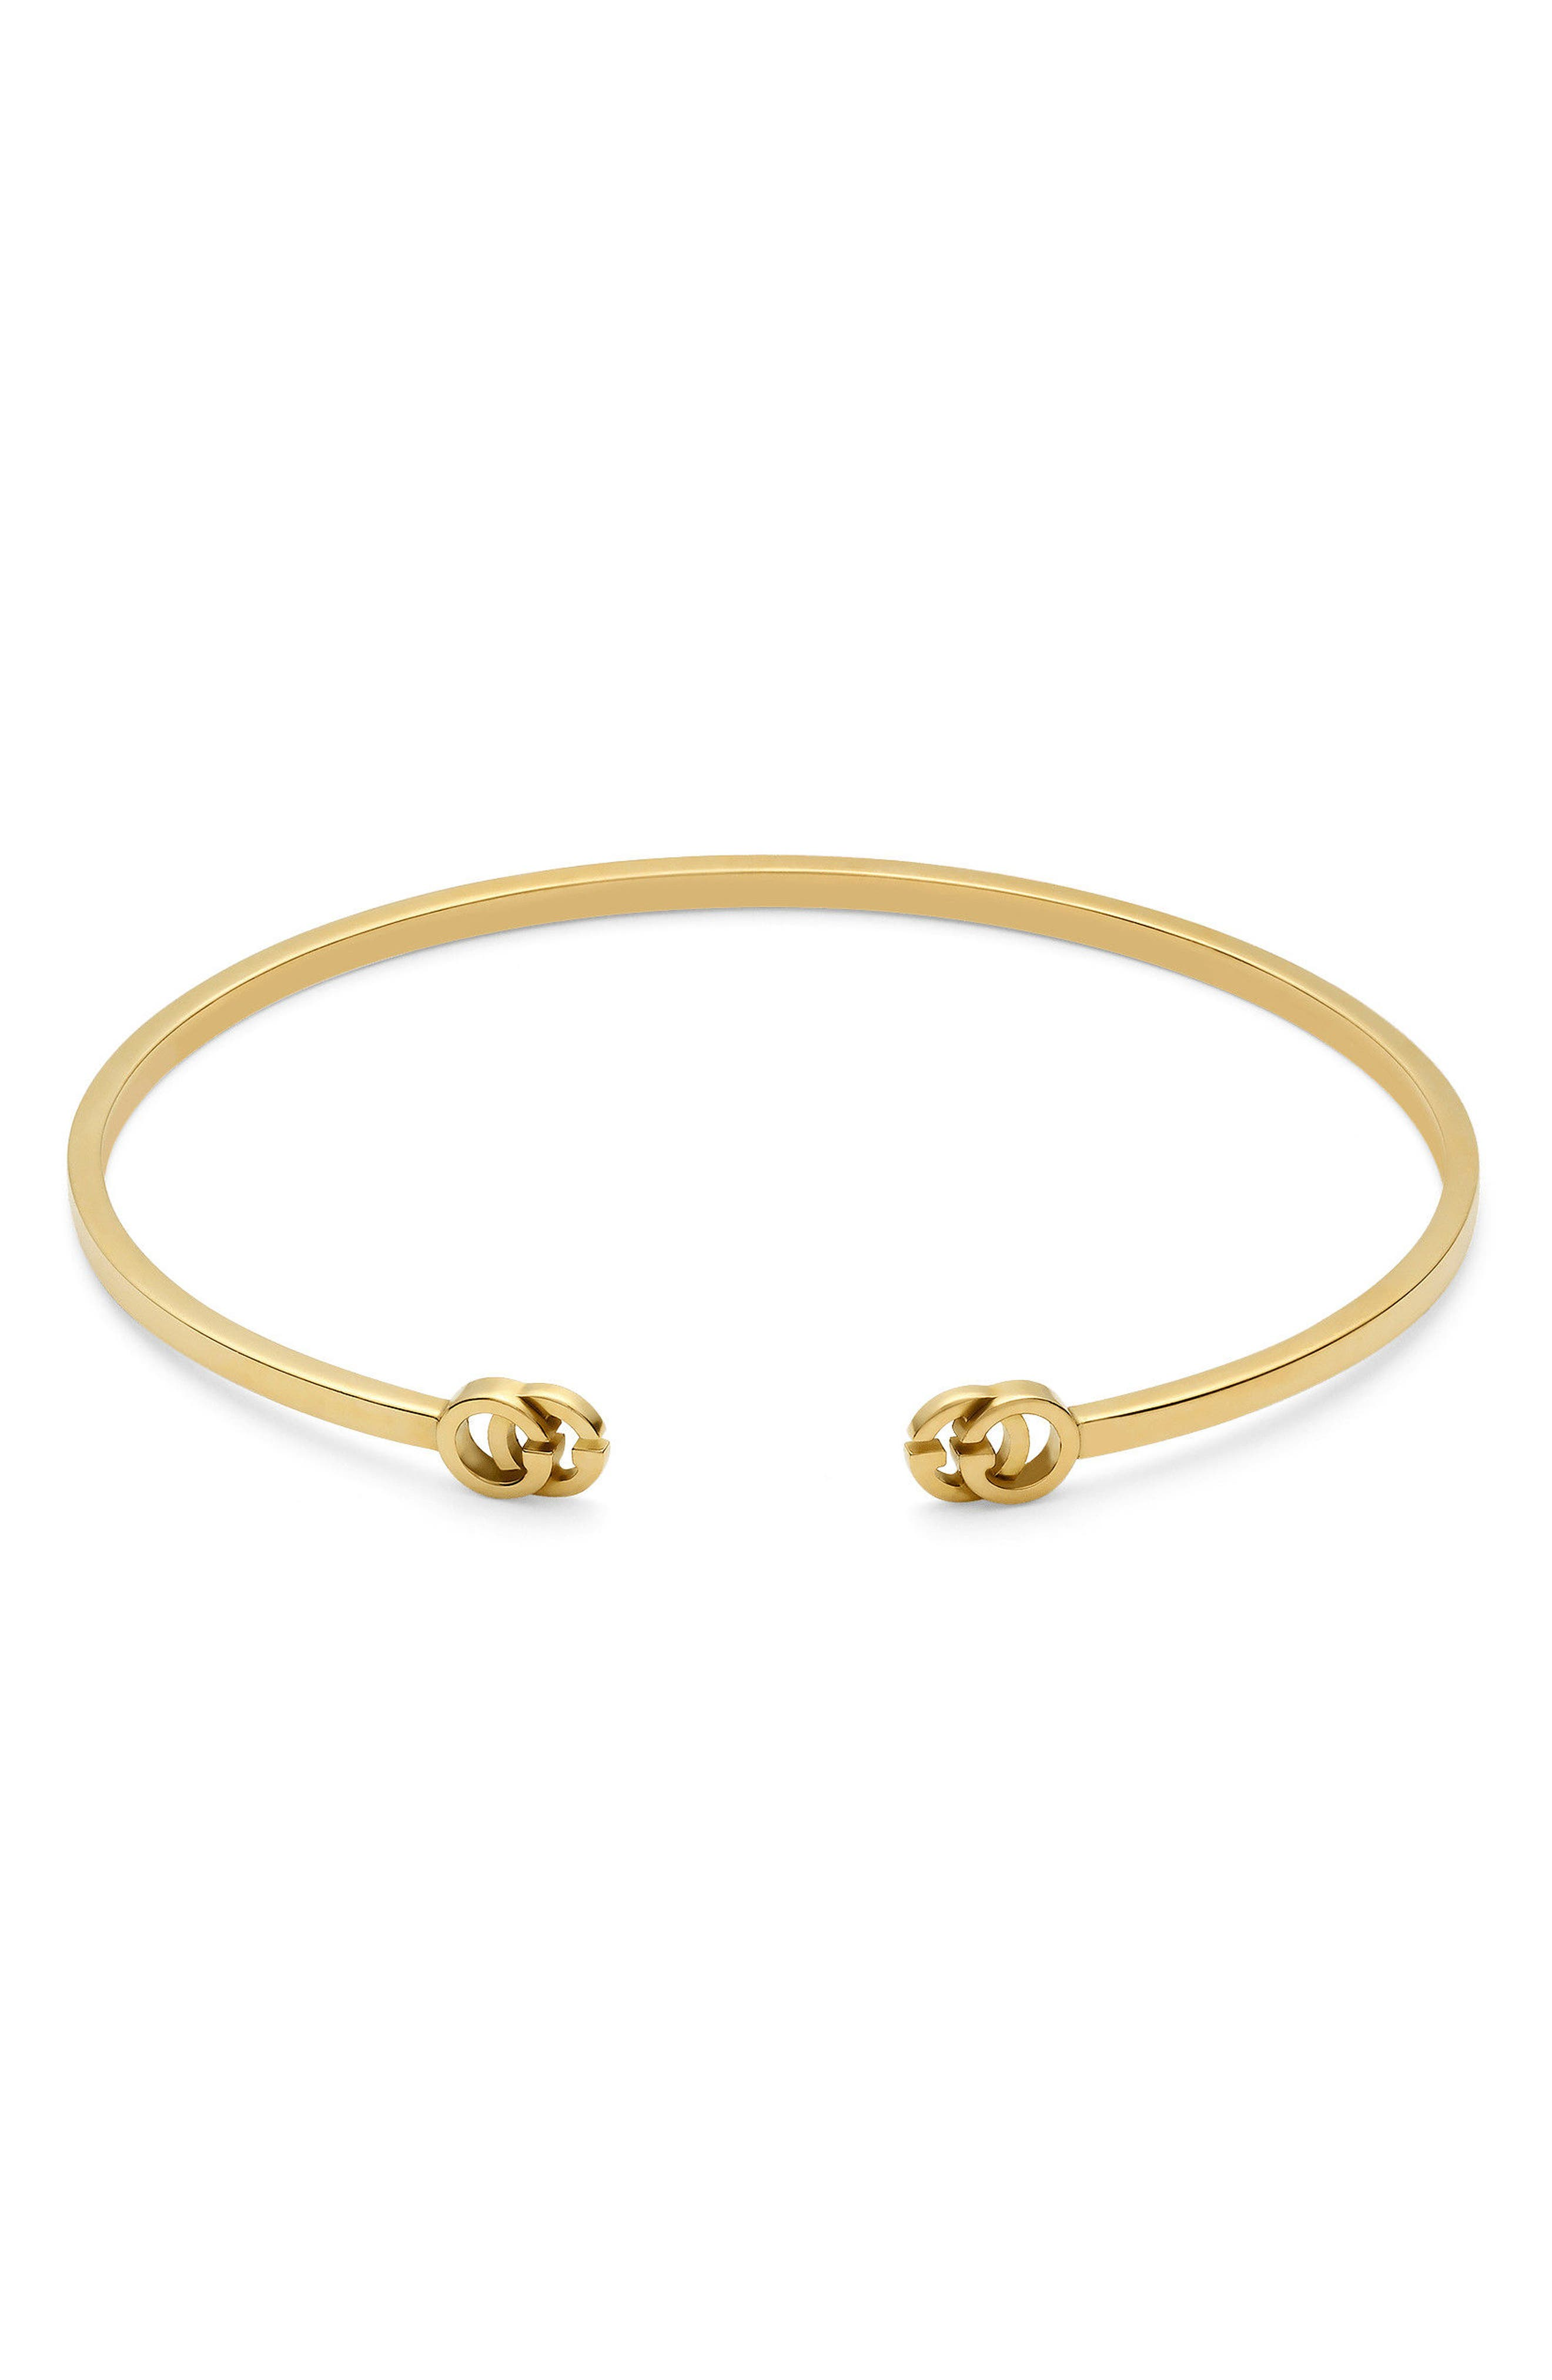 Double-G Cuff,                         Main,                         color, Yellow Gold